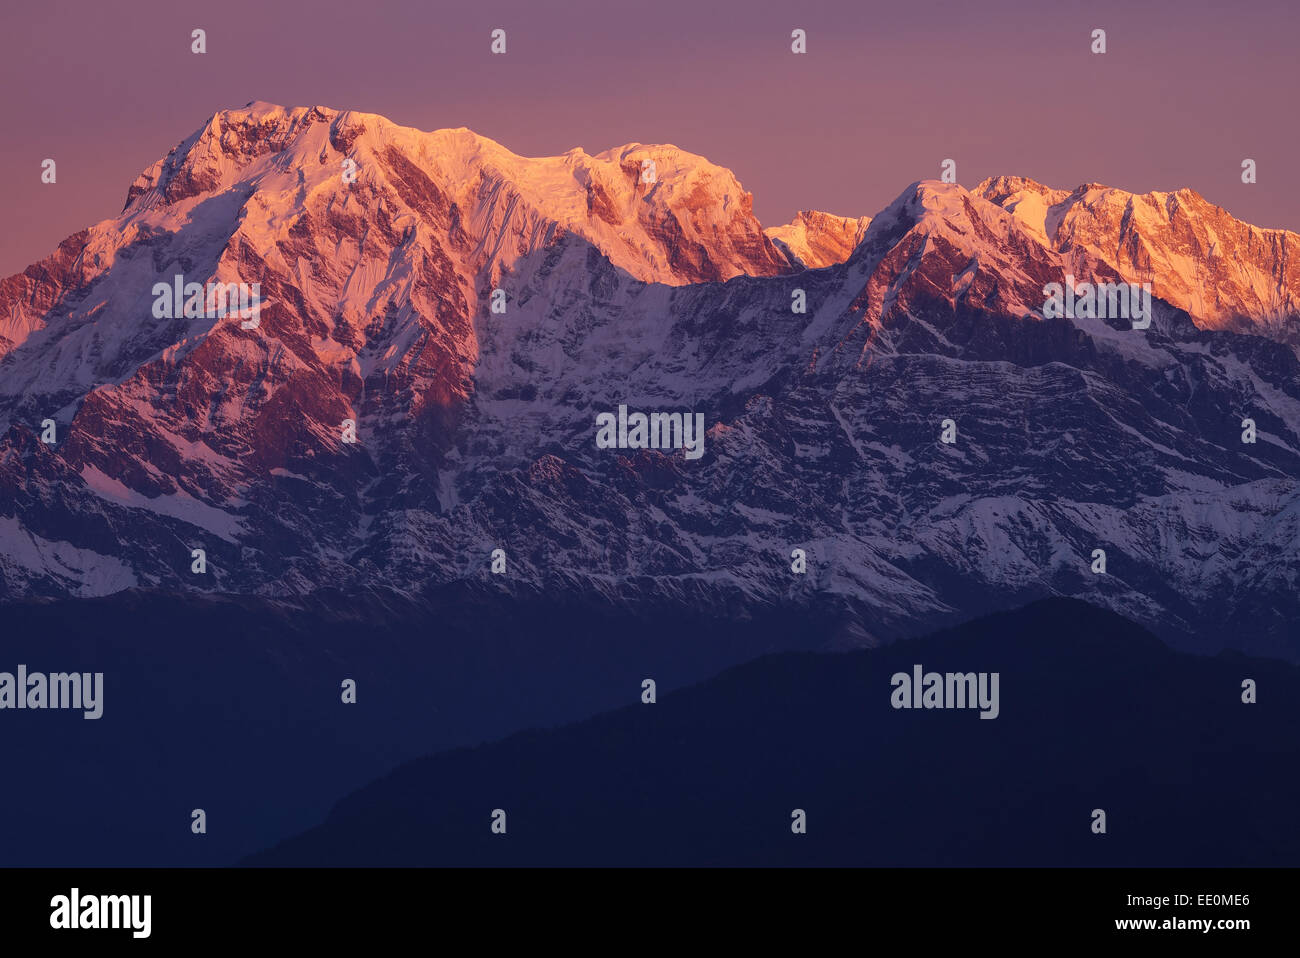 Sunrise over the Dhaulagiri massif of the Annapurna range in the Himalayas - Stock Image